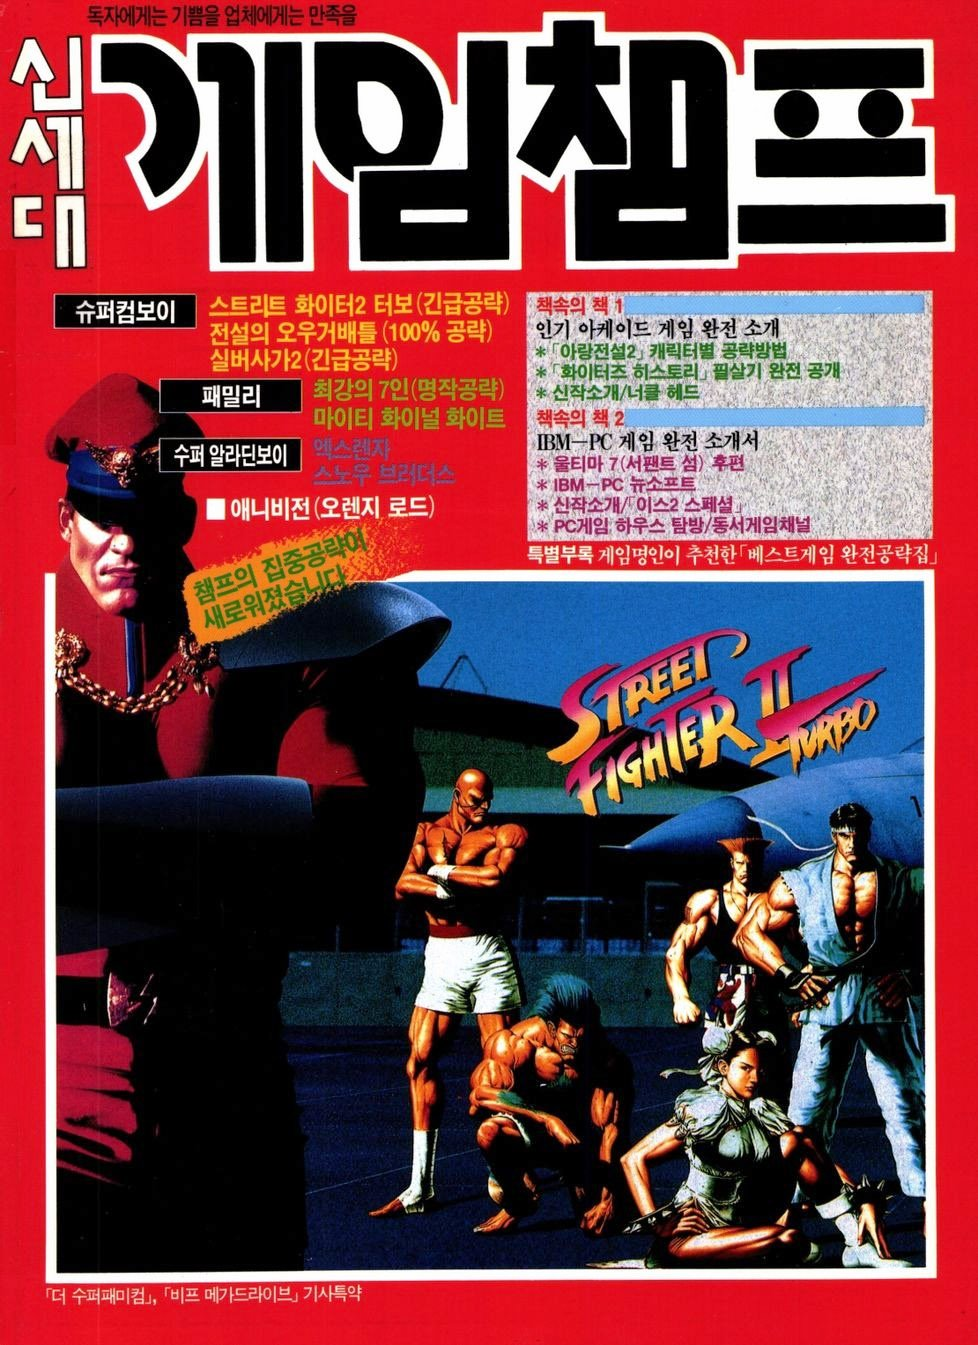 Game Champ Issue 009 supplement (August 1993)